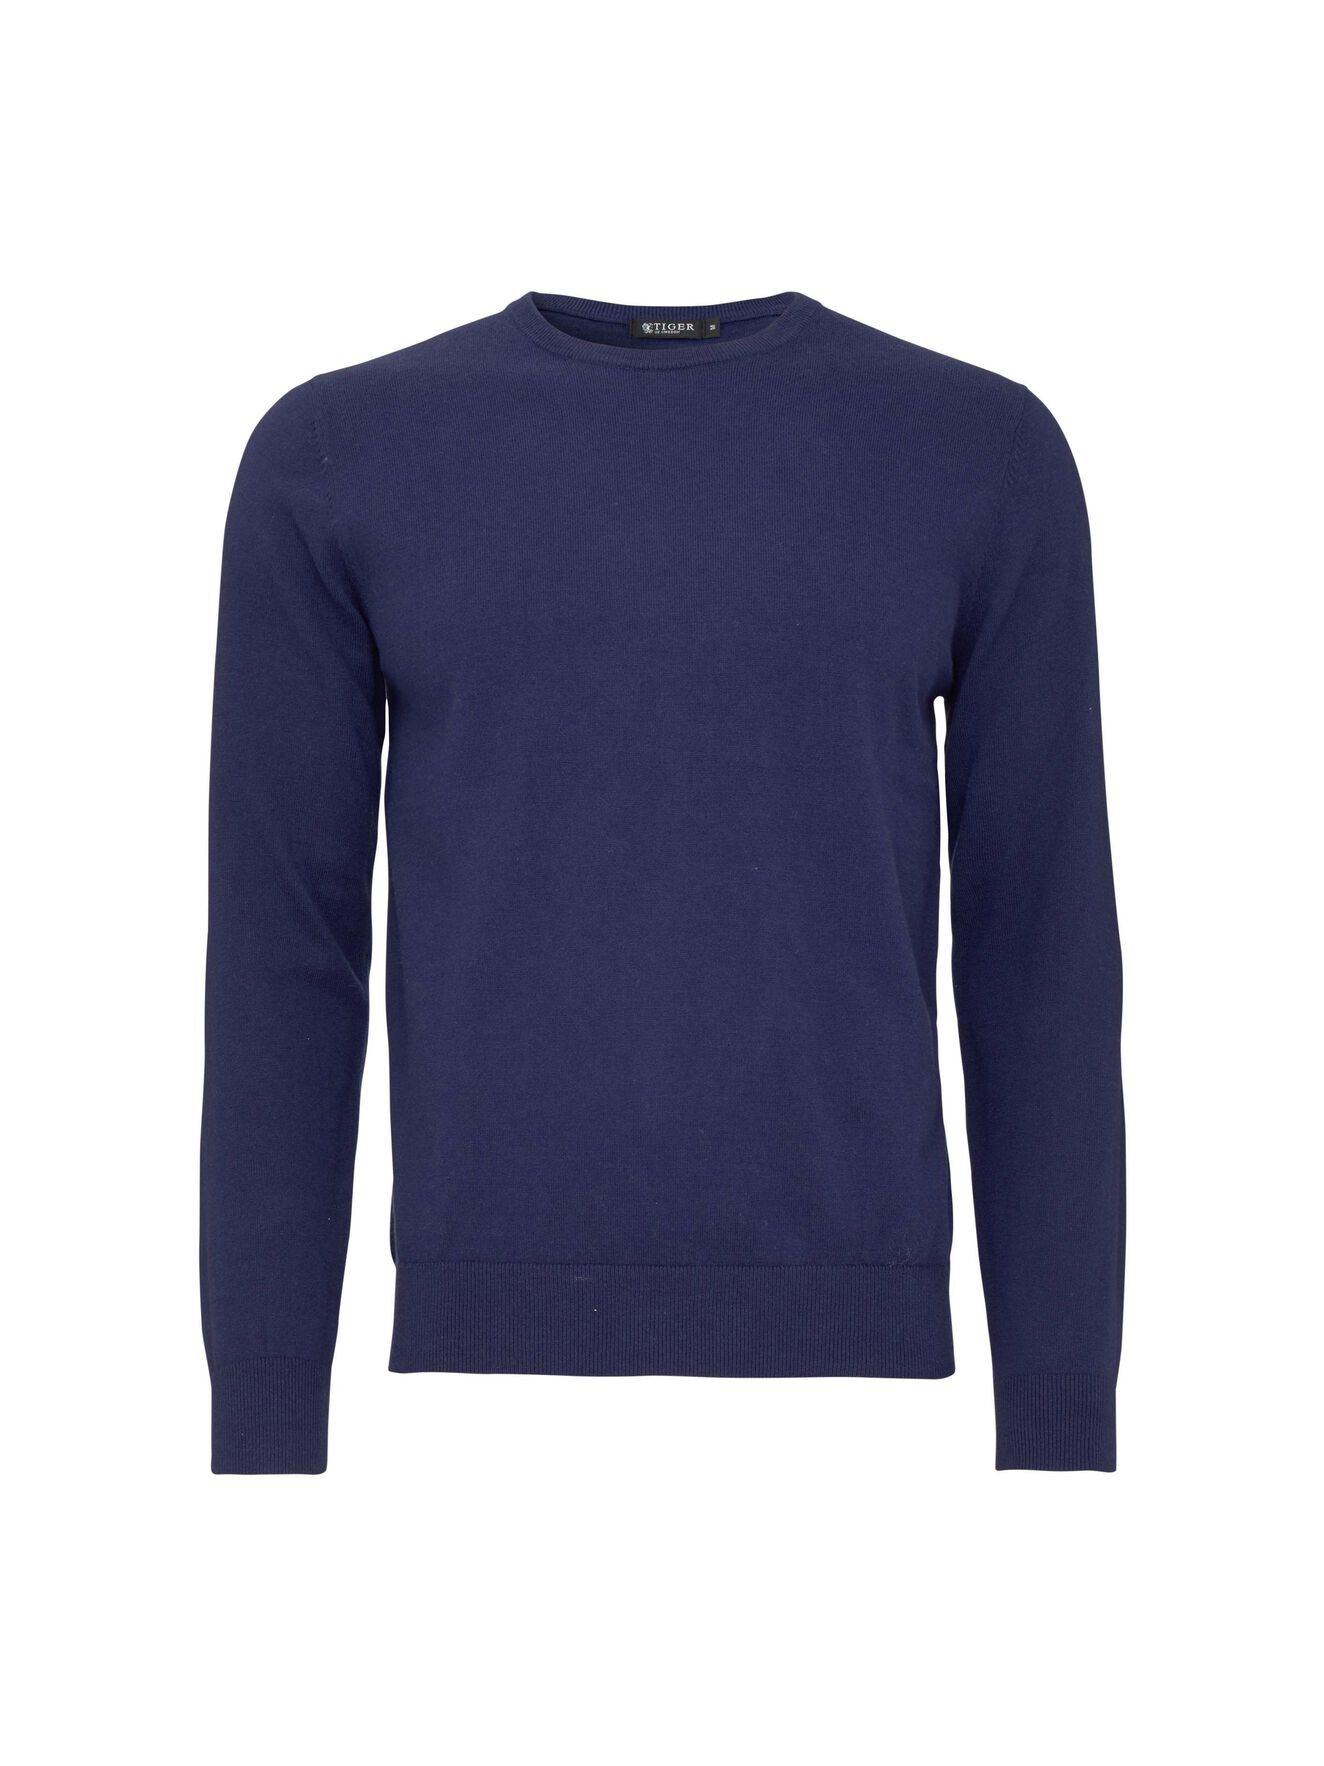 Matias CS pullover in Light Ink from Tiger of Sweden